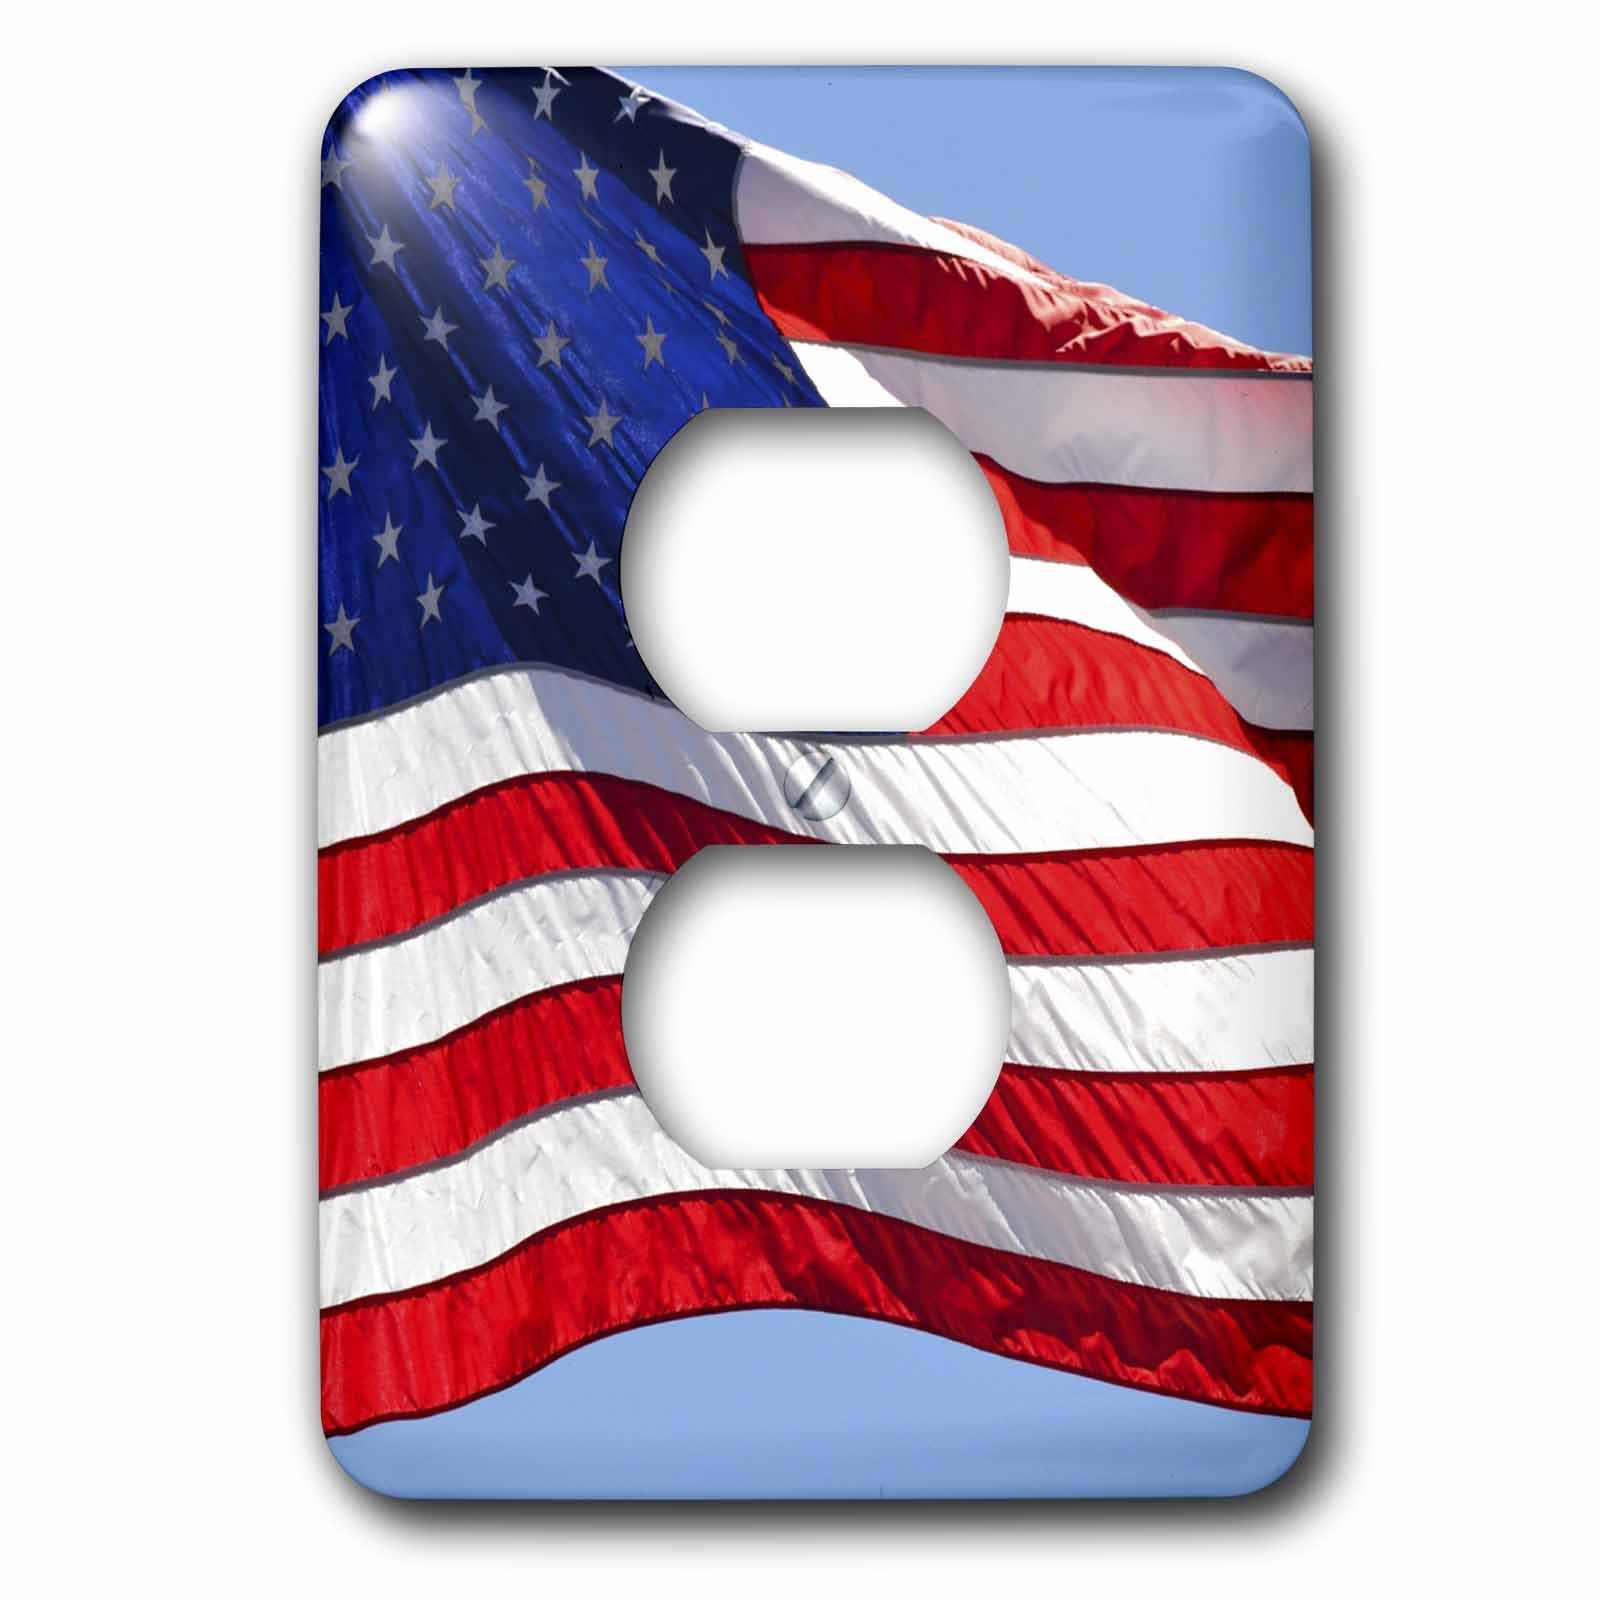 3dRose lsp_53611_6 American Flag Usa Patriotic Americana Light Switch Cover